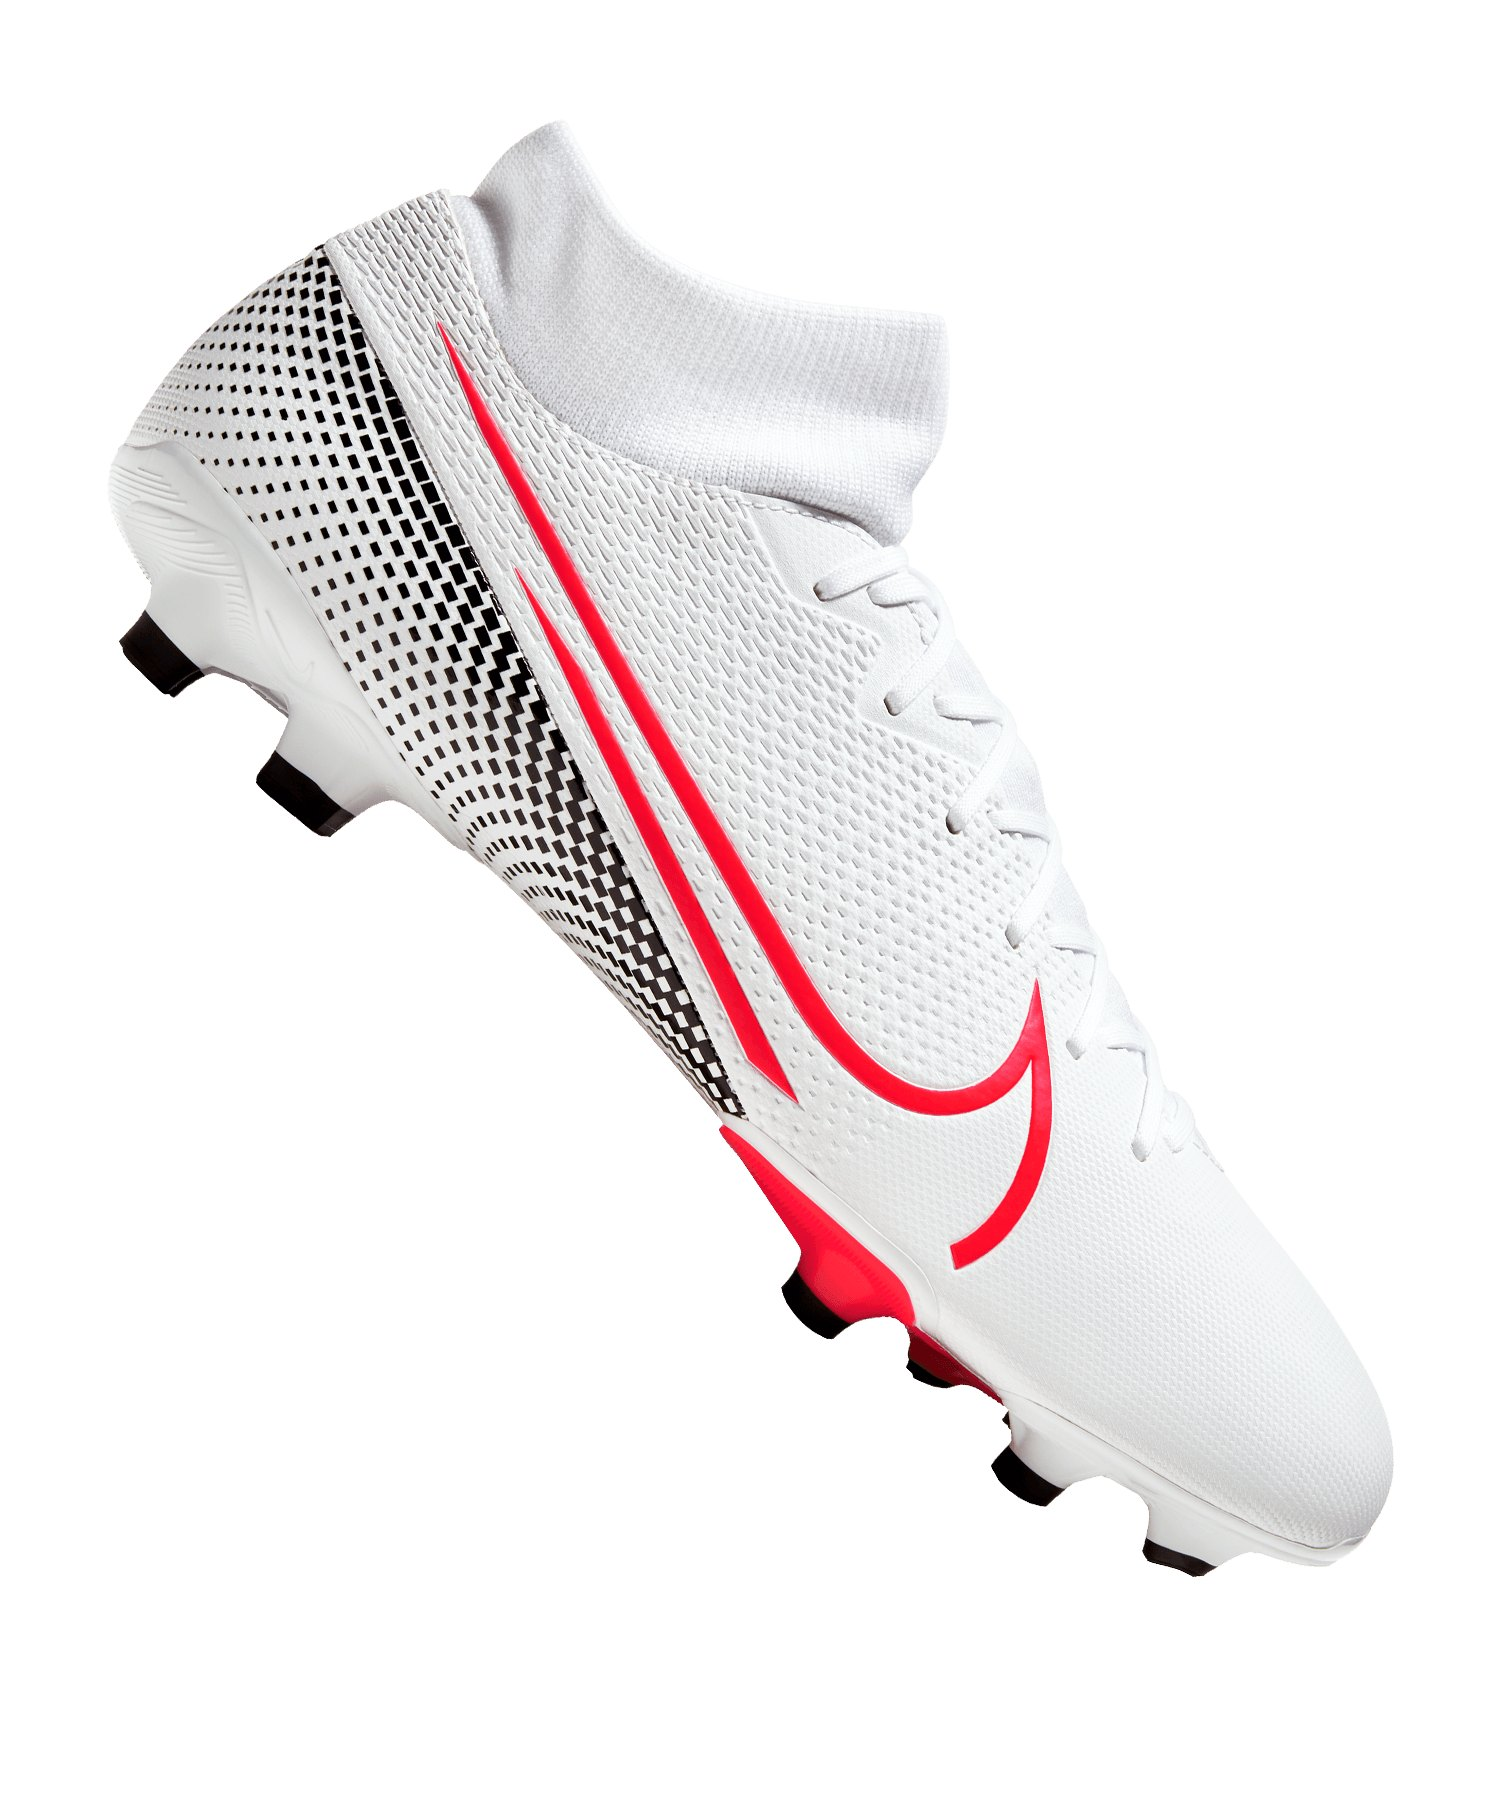 Nike Mercurial Superfly VII Future Lab II Academy FG/MG Weiss F160 - weiss